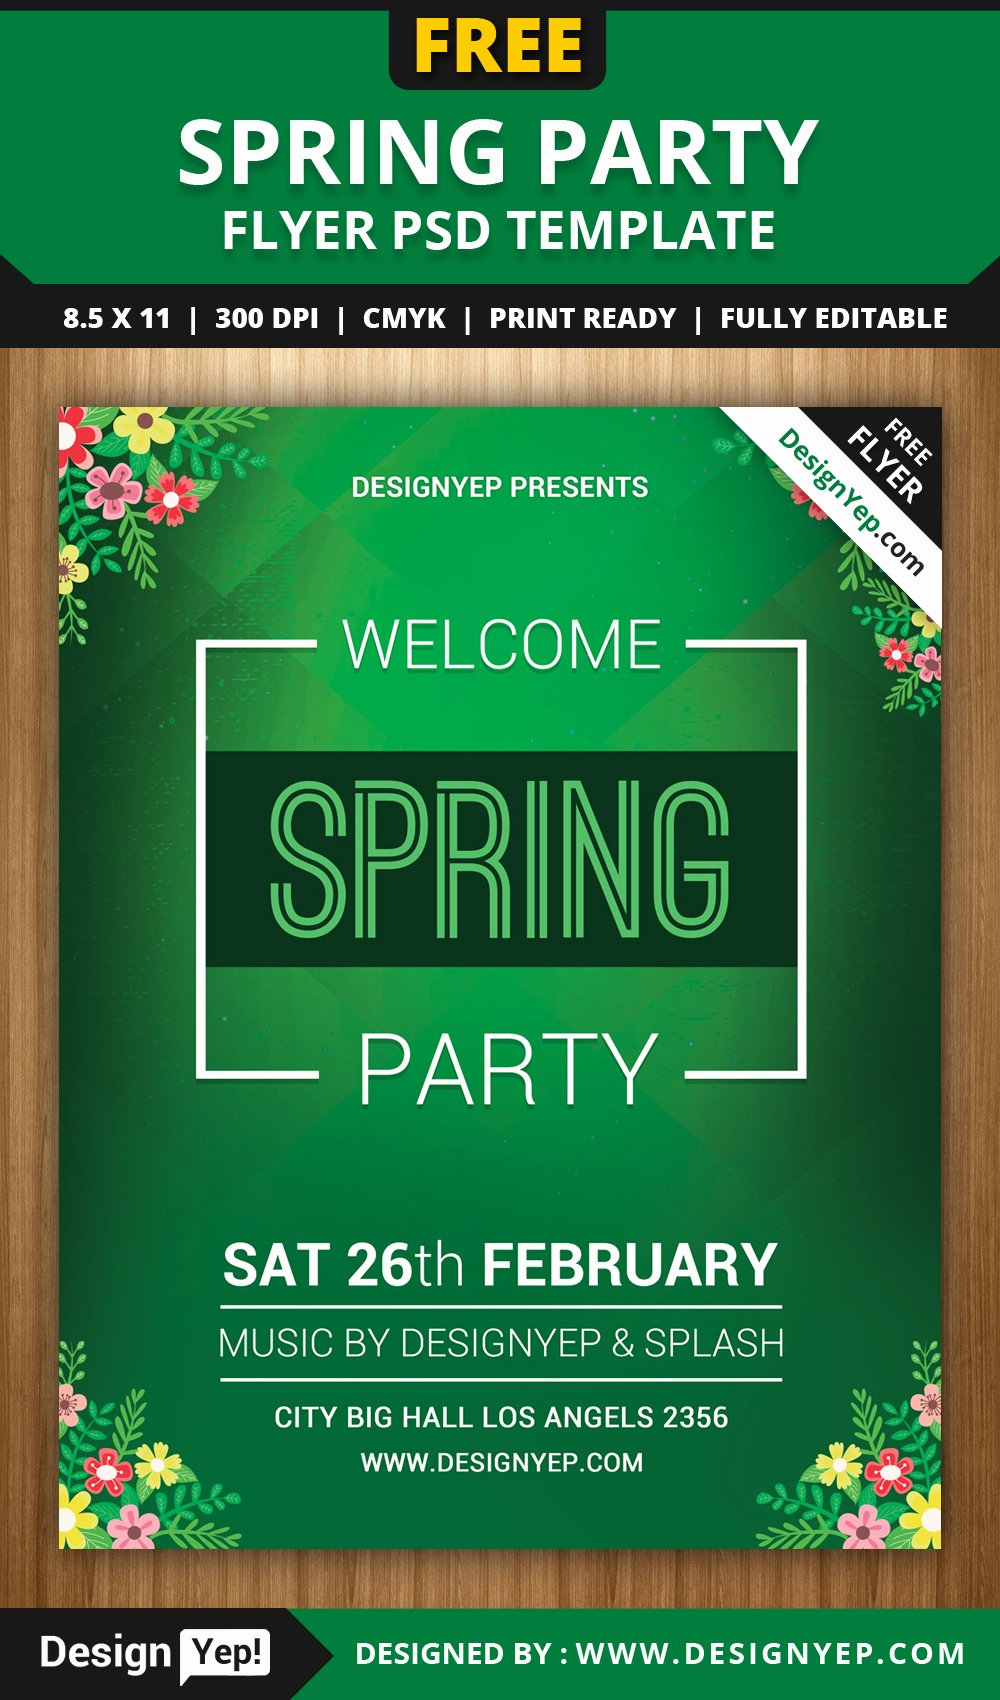 Free Party Flyer Templates Elegant Free Spring Wel E Party Flyer Psd Template Designyep